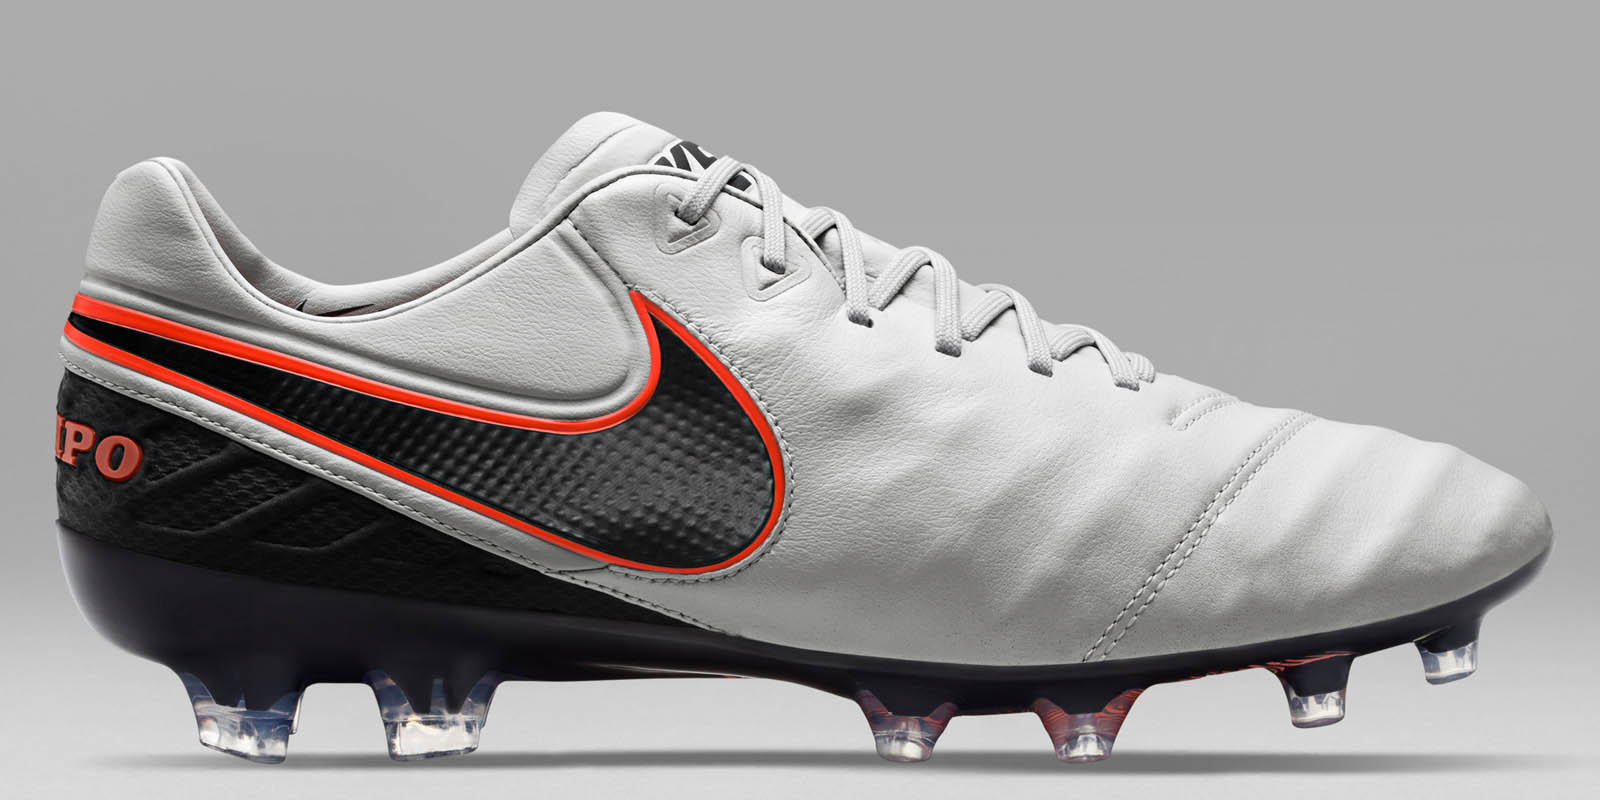 next gen nike tiempo legend 6 2016 boots released footy. Black Bedroom Furniture Sets. Home Design Ideas